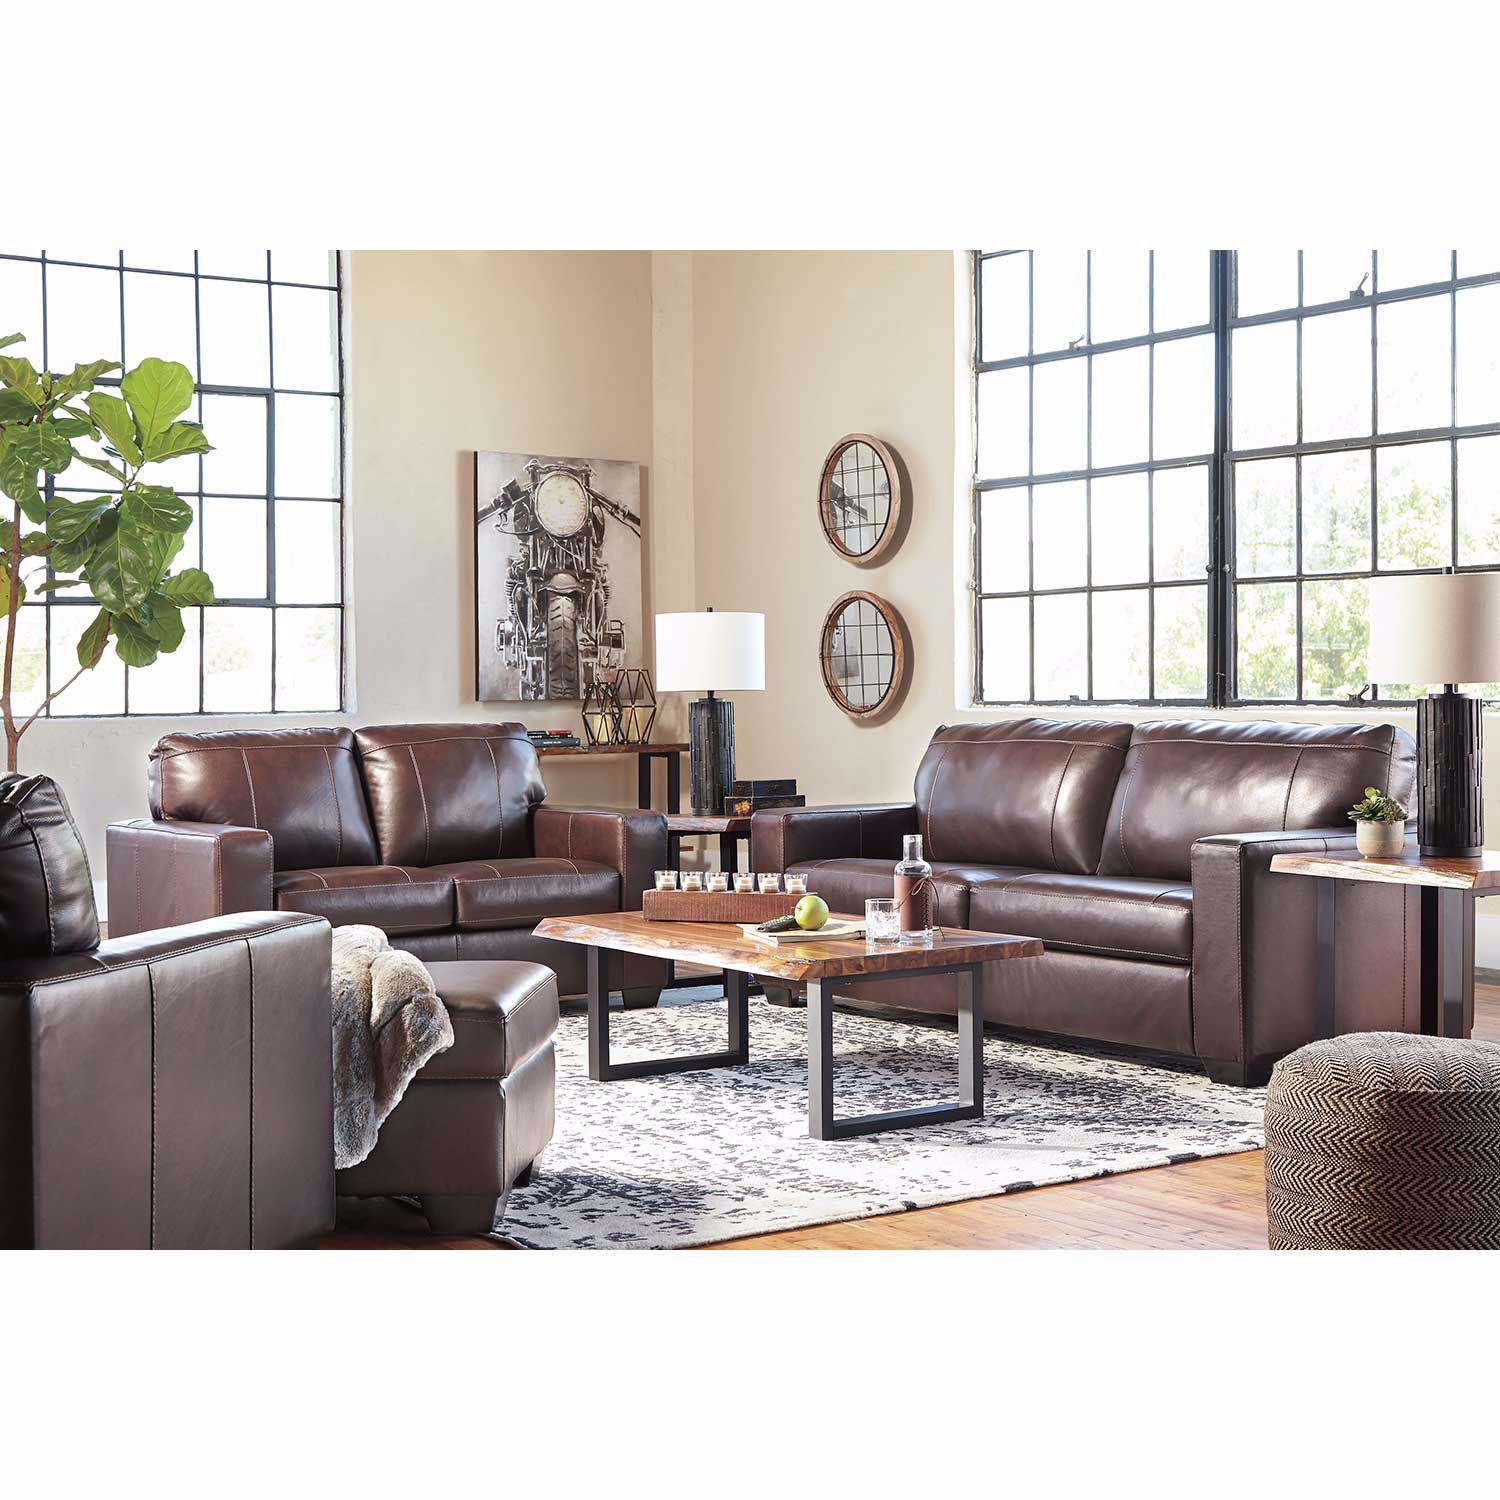 Picture of Morelos Brown Italian Leather Ottoman